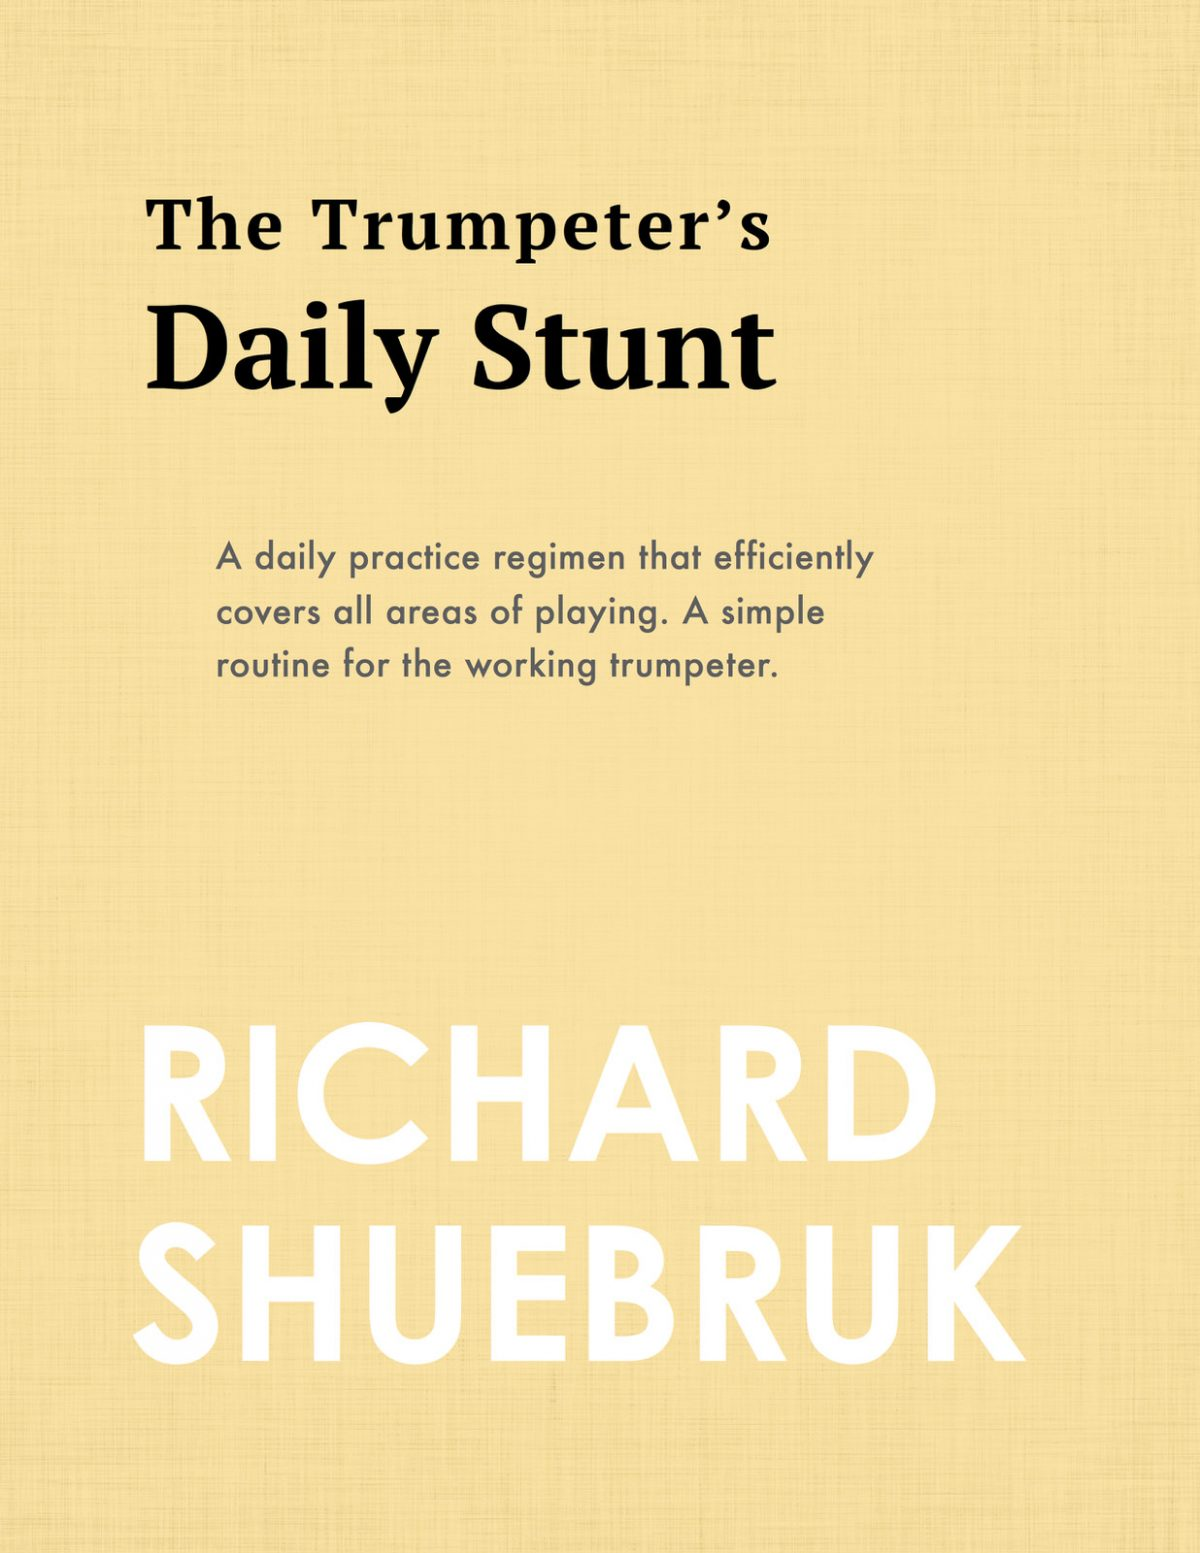 Shuebruk, The Trumpeter's Daily Stunt-p1